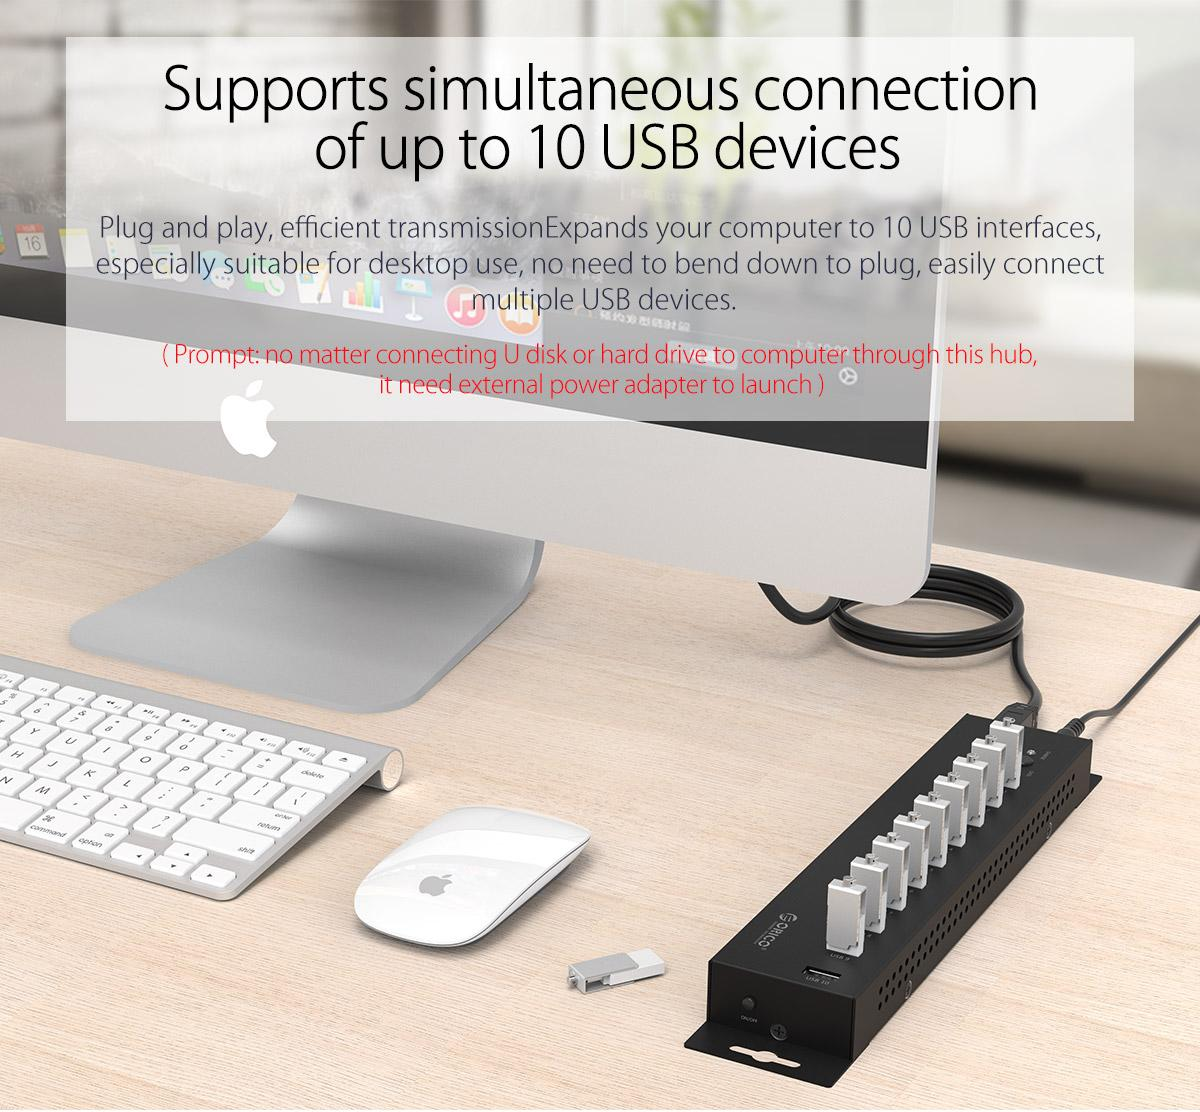 supports simultaneous connection of up to 10 USB devices